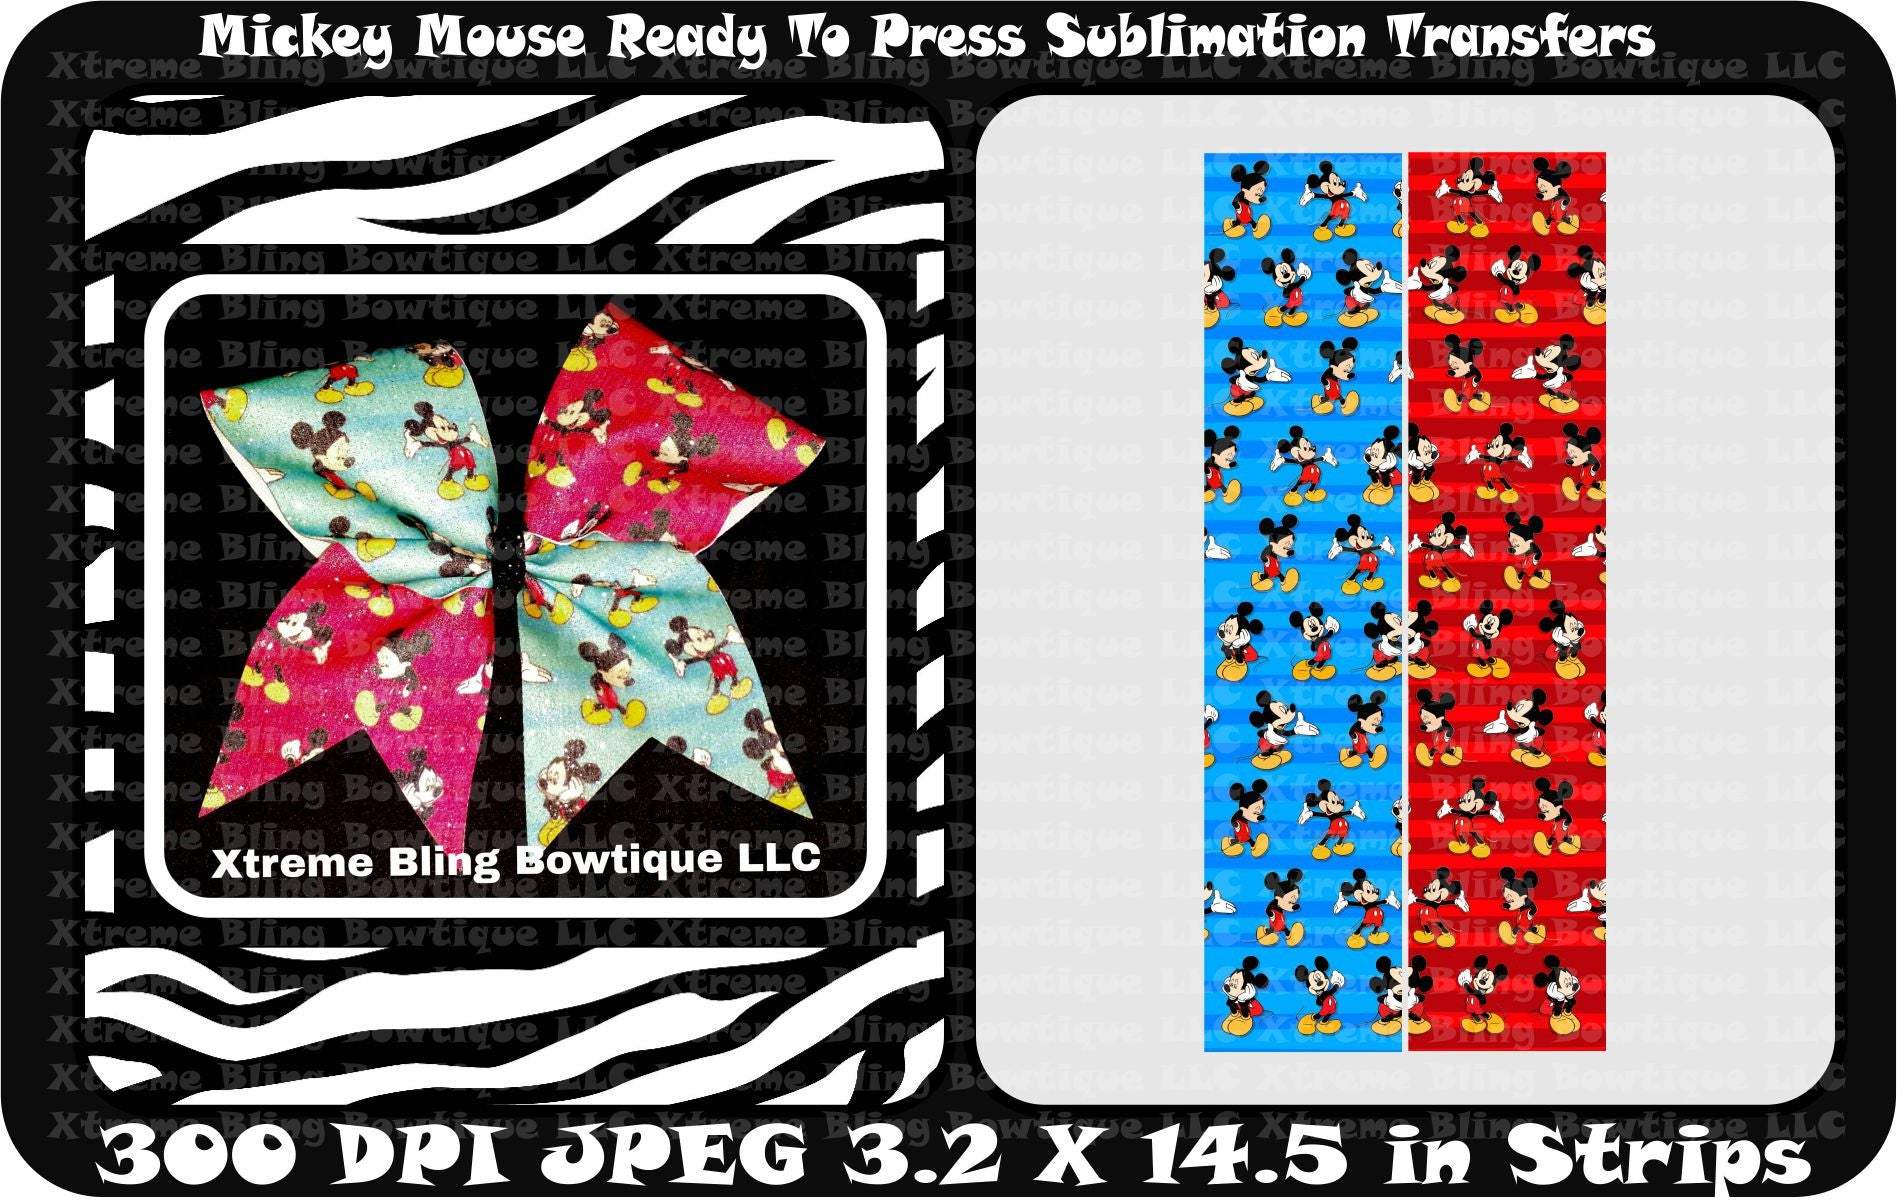 Mickey Mouse Ready to Press Sublimation Bow Strips